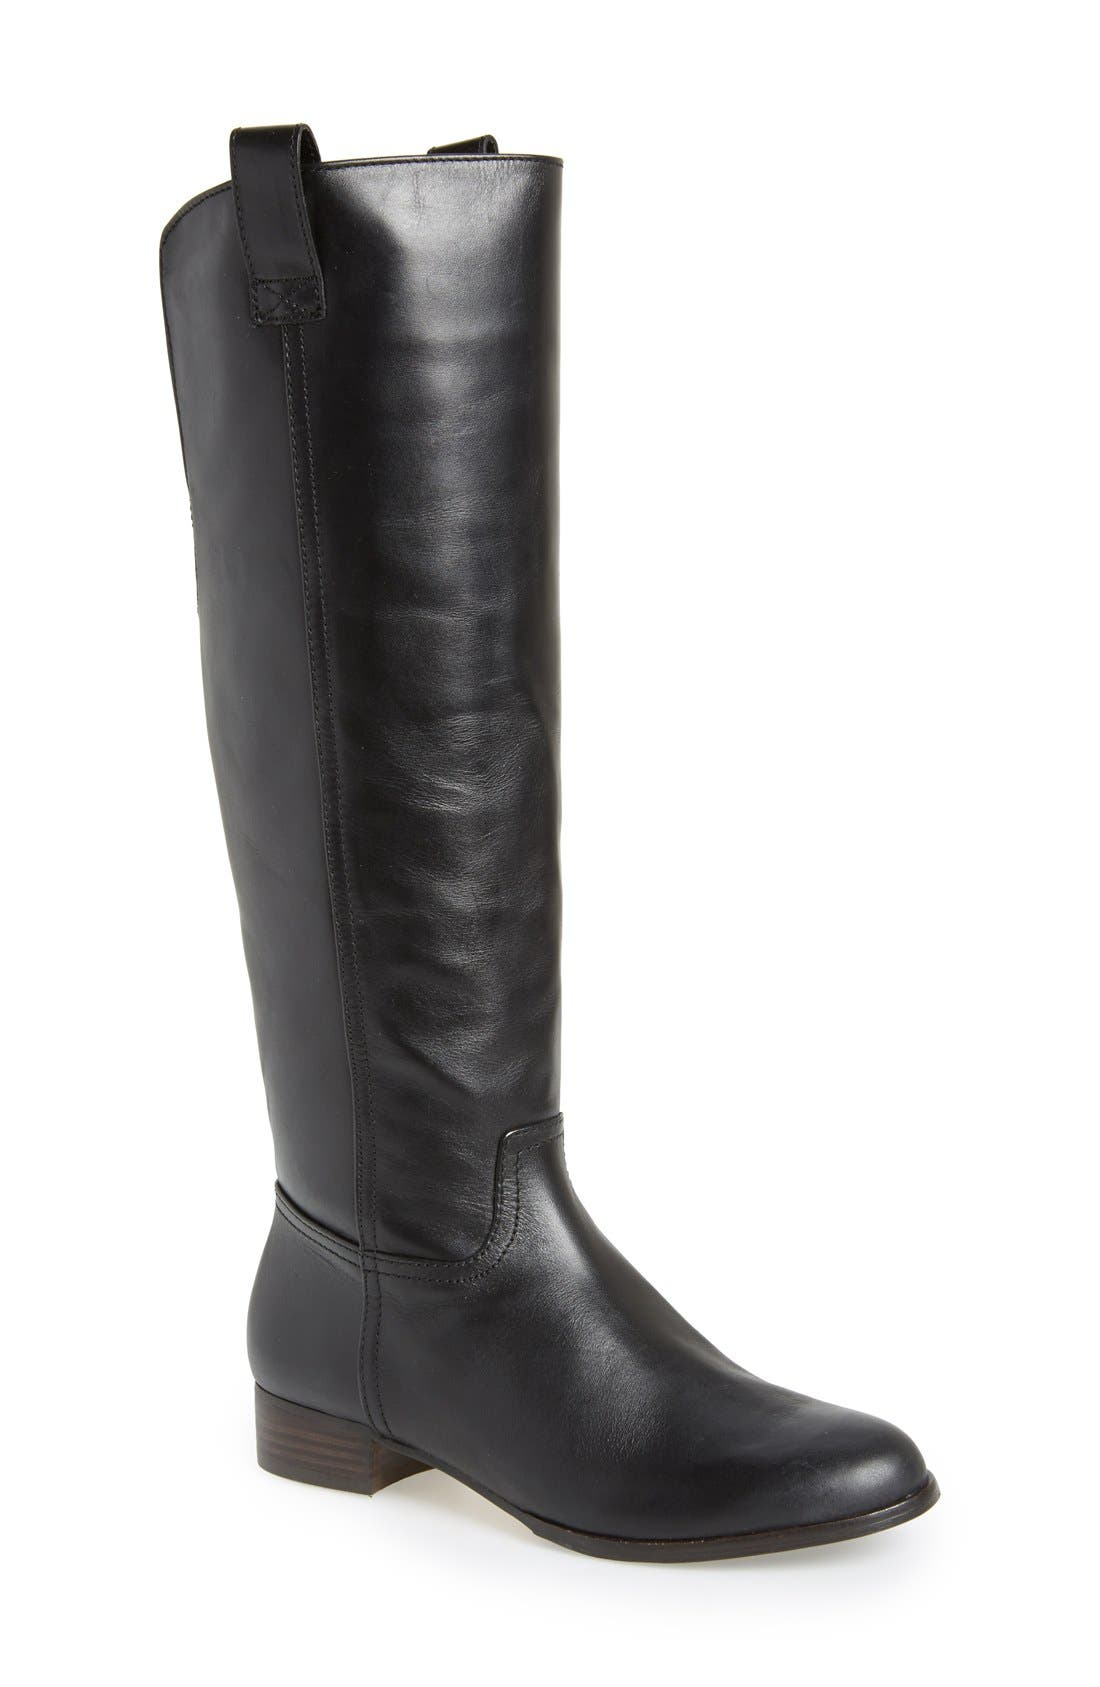 Alternate Image 1 Selected - Louise et Cie 'Kingcale' Knee High Boot (Women)